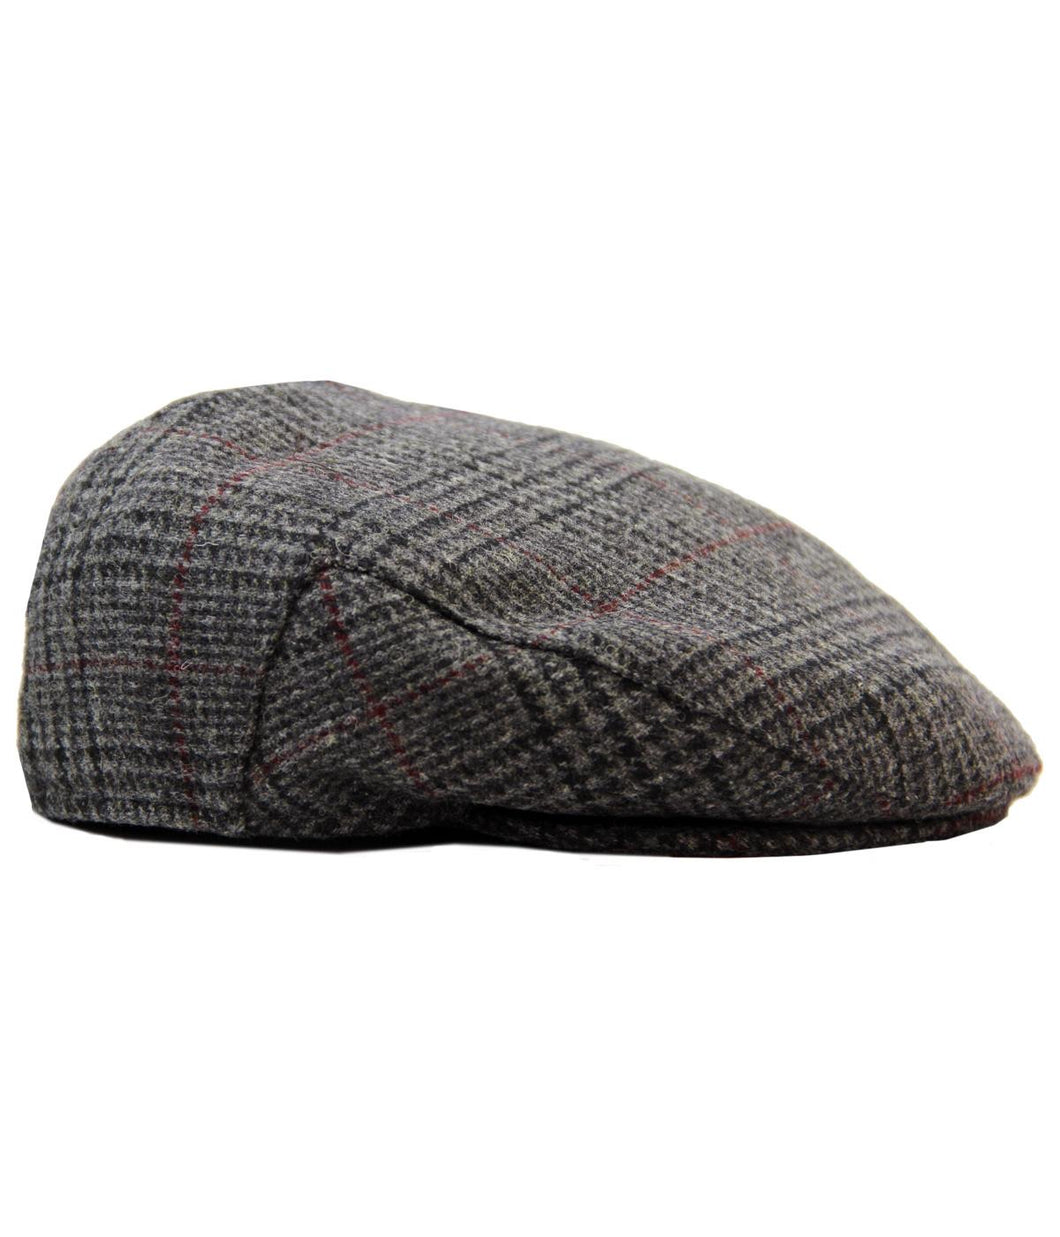 Failsworth Cambridge 481 Flat Cap